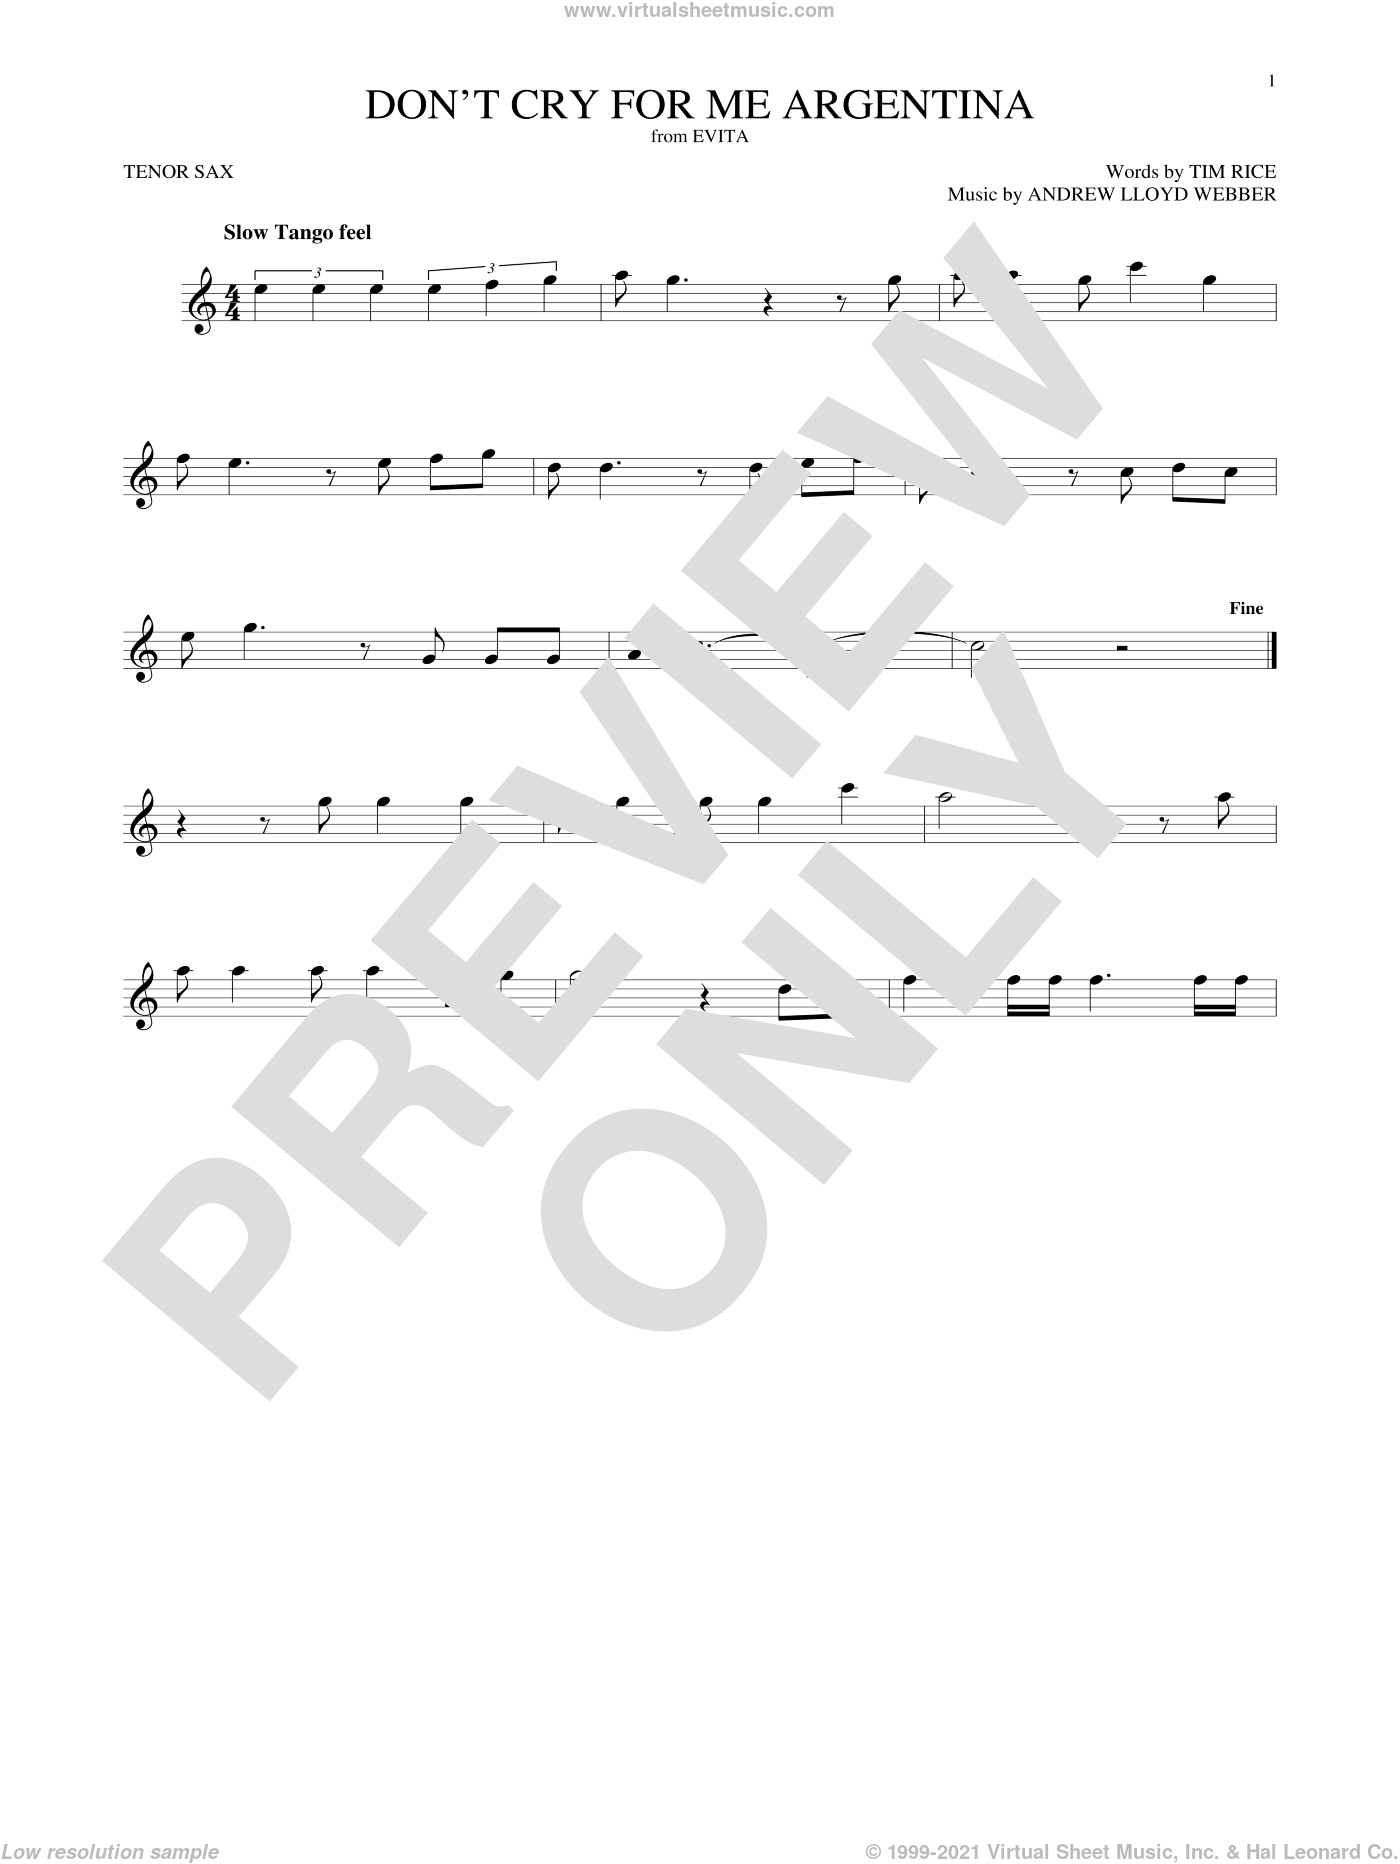 Don't Cry For Me Argentina sheet music for tenor saxophone solo by Andrew Lloyd Webber, Madonna and Tim Rice, intermediate skill level